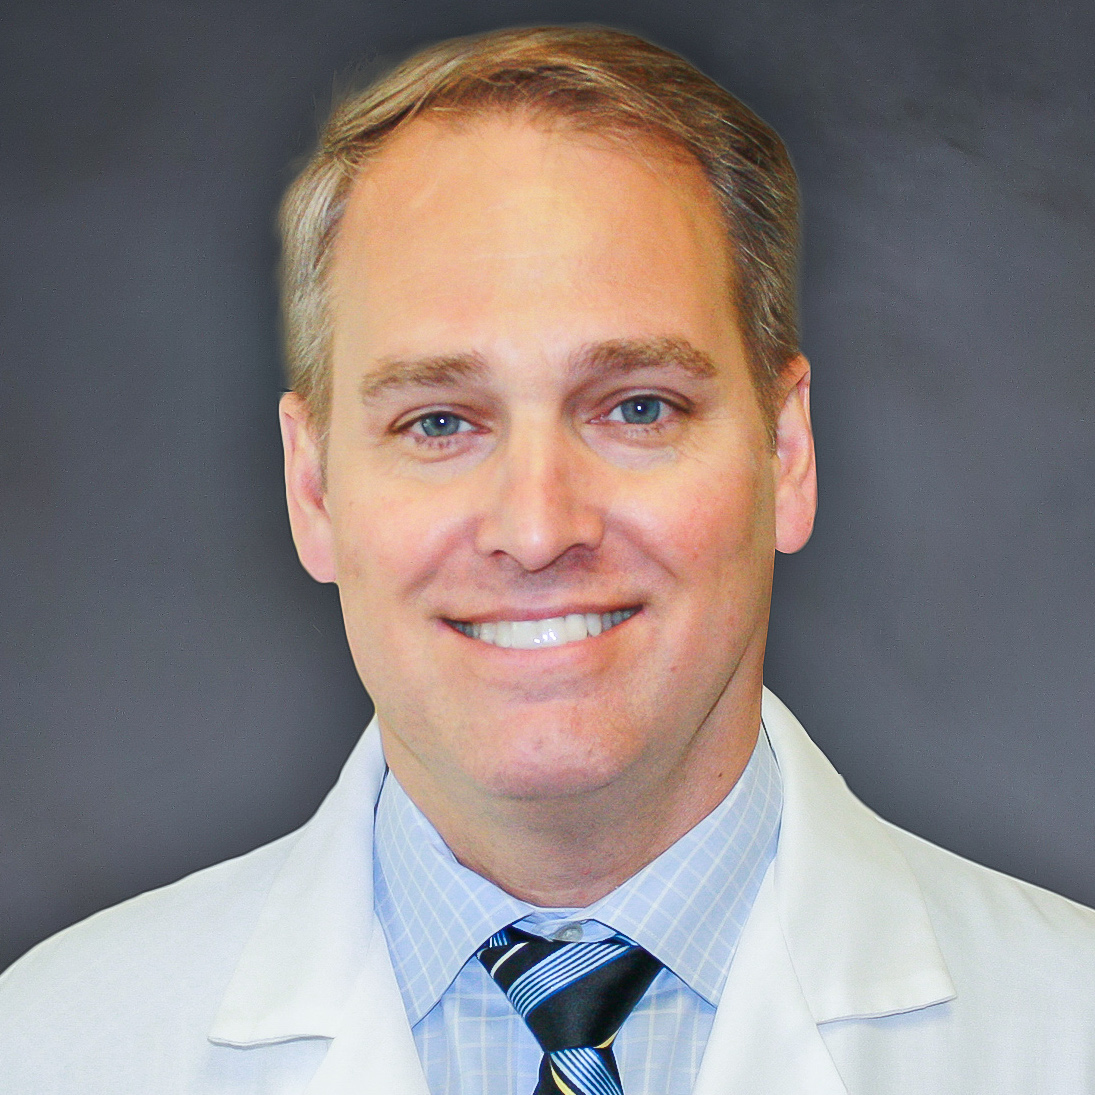 Dr. Eric Anctil Foot and Ankle surgeon Tucson